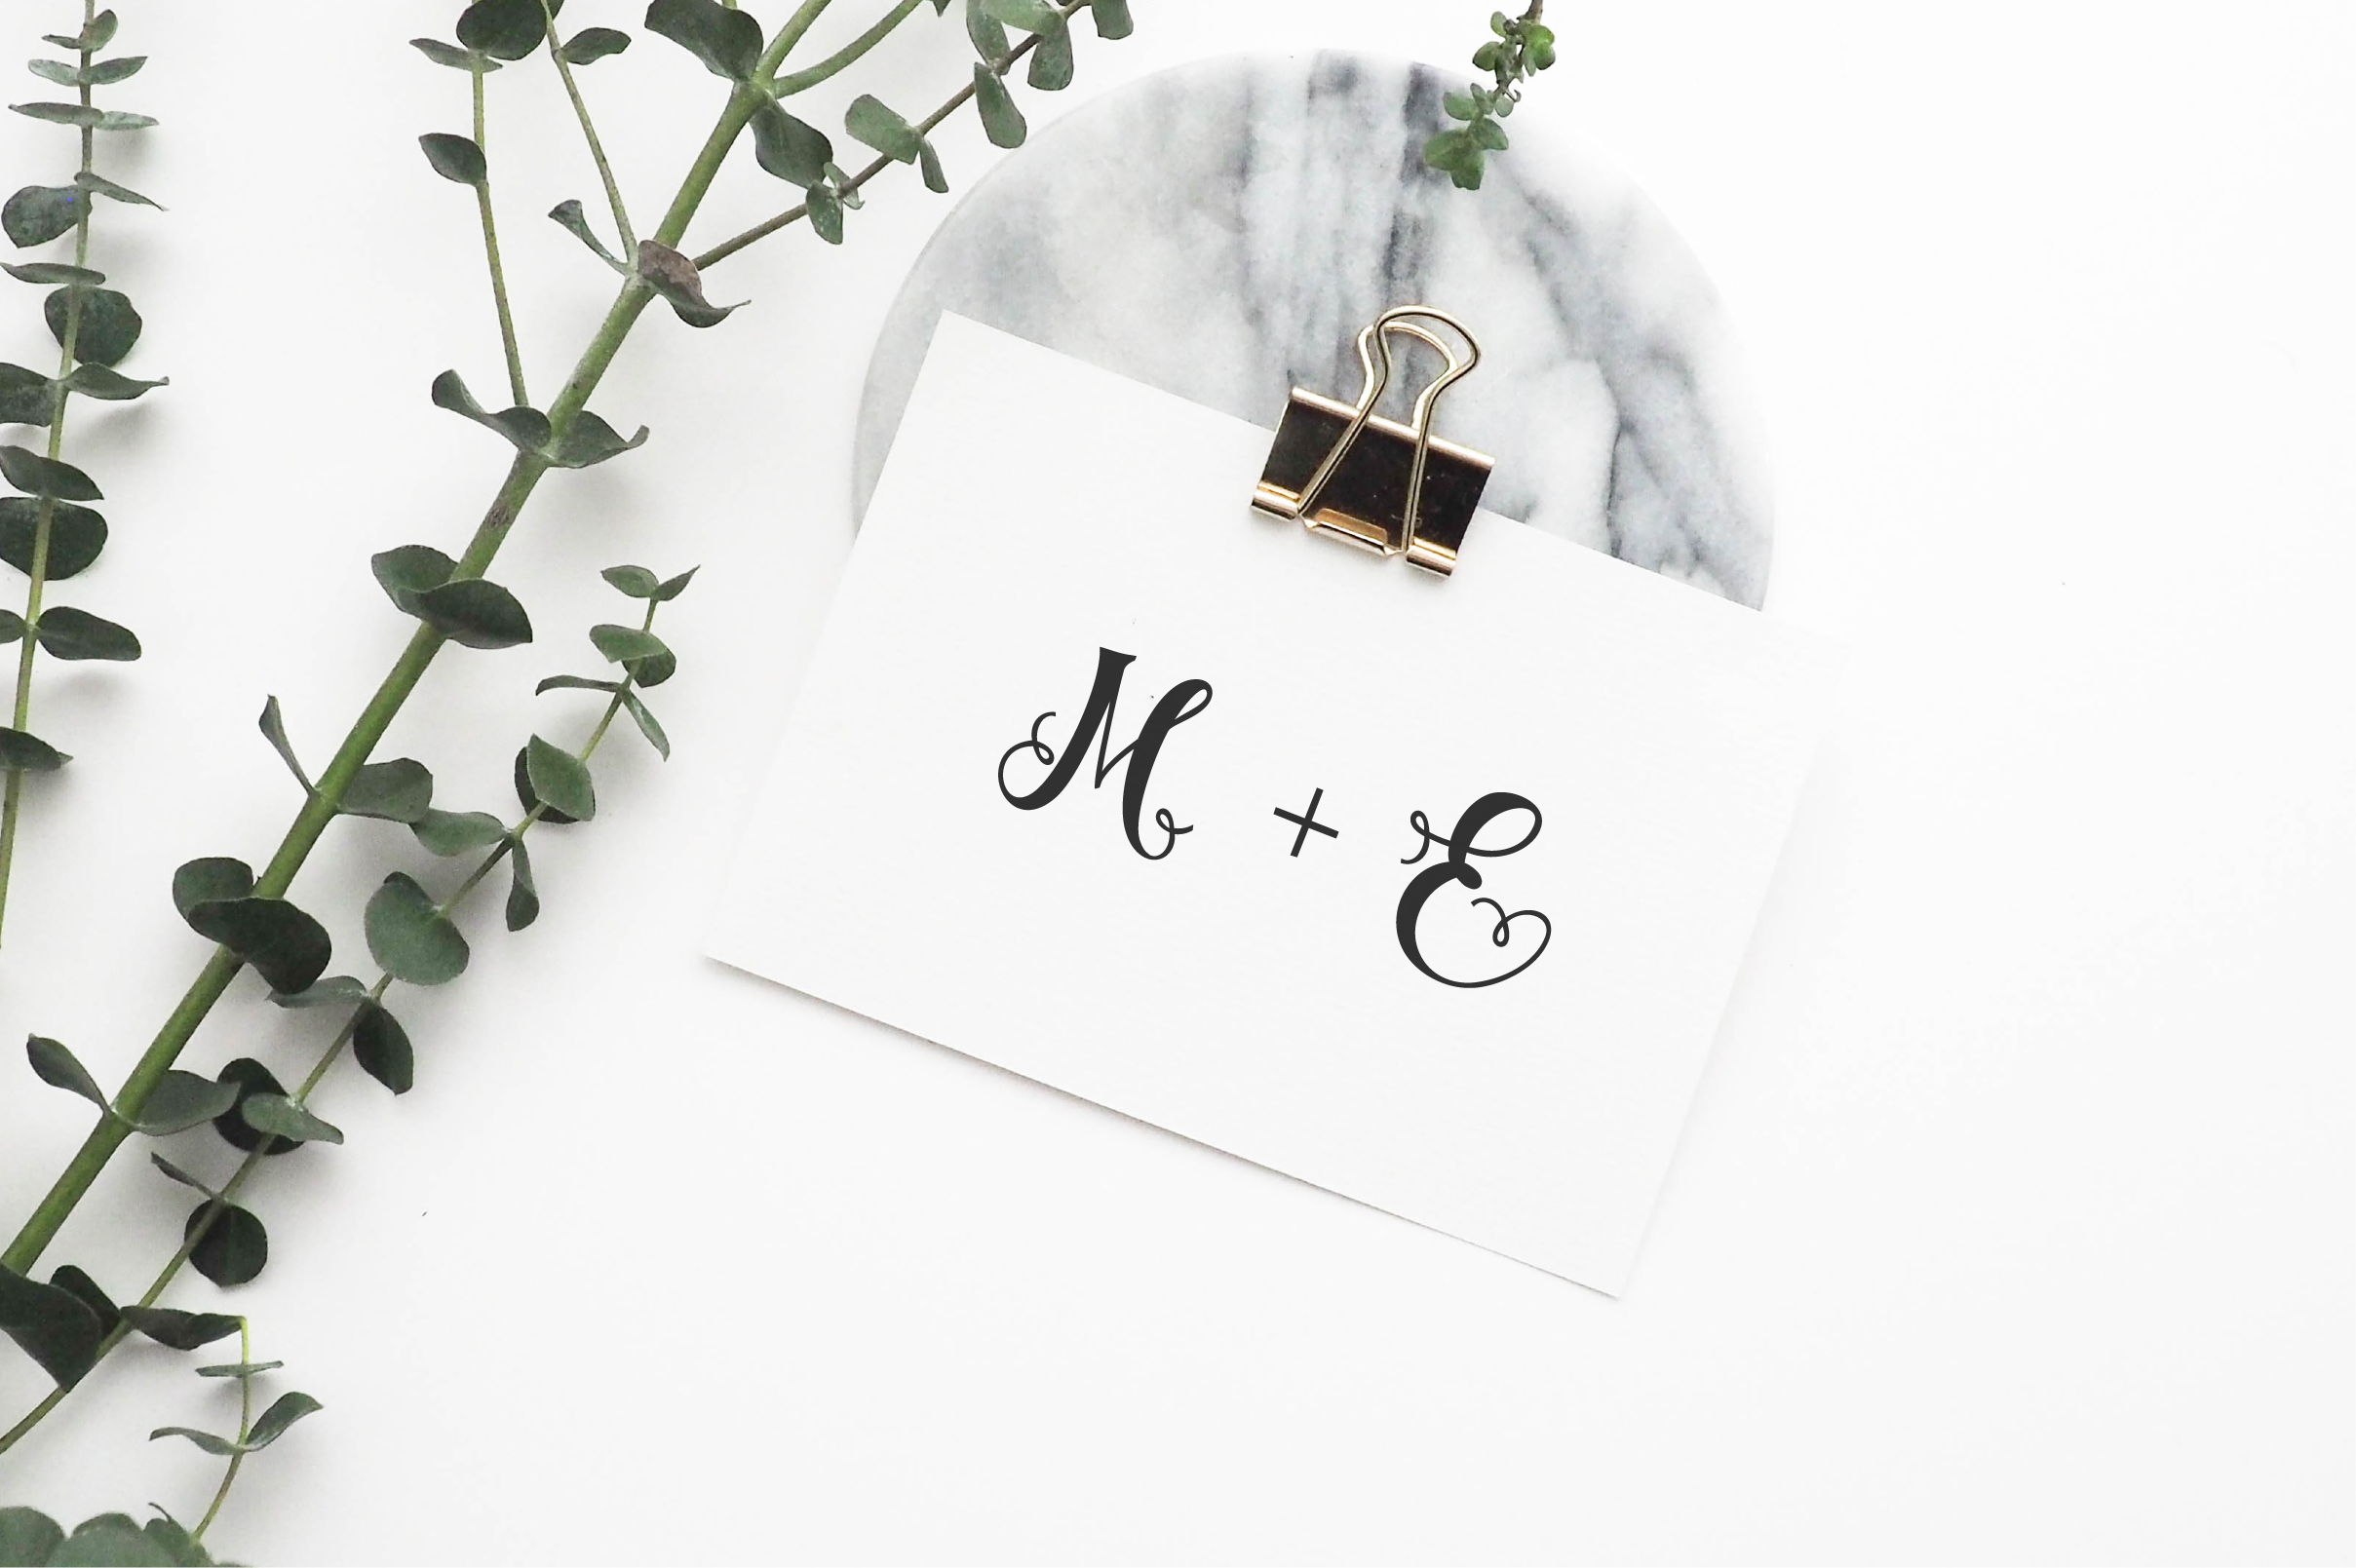 Styled Monograms - Hand lettered Initials example image 5